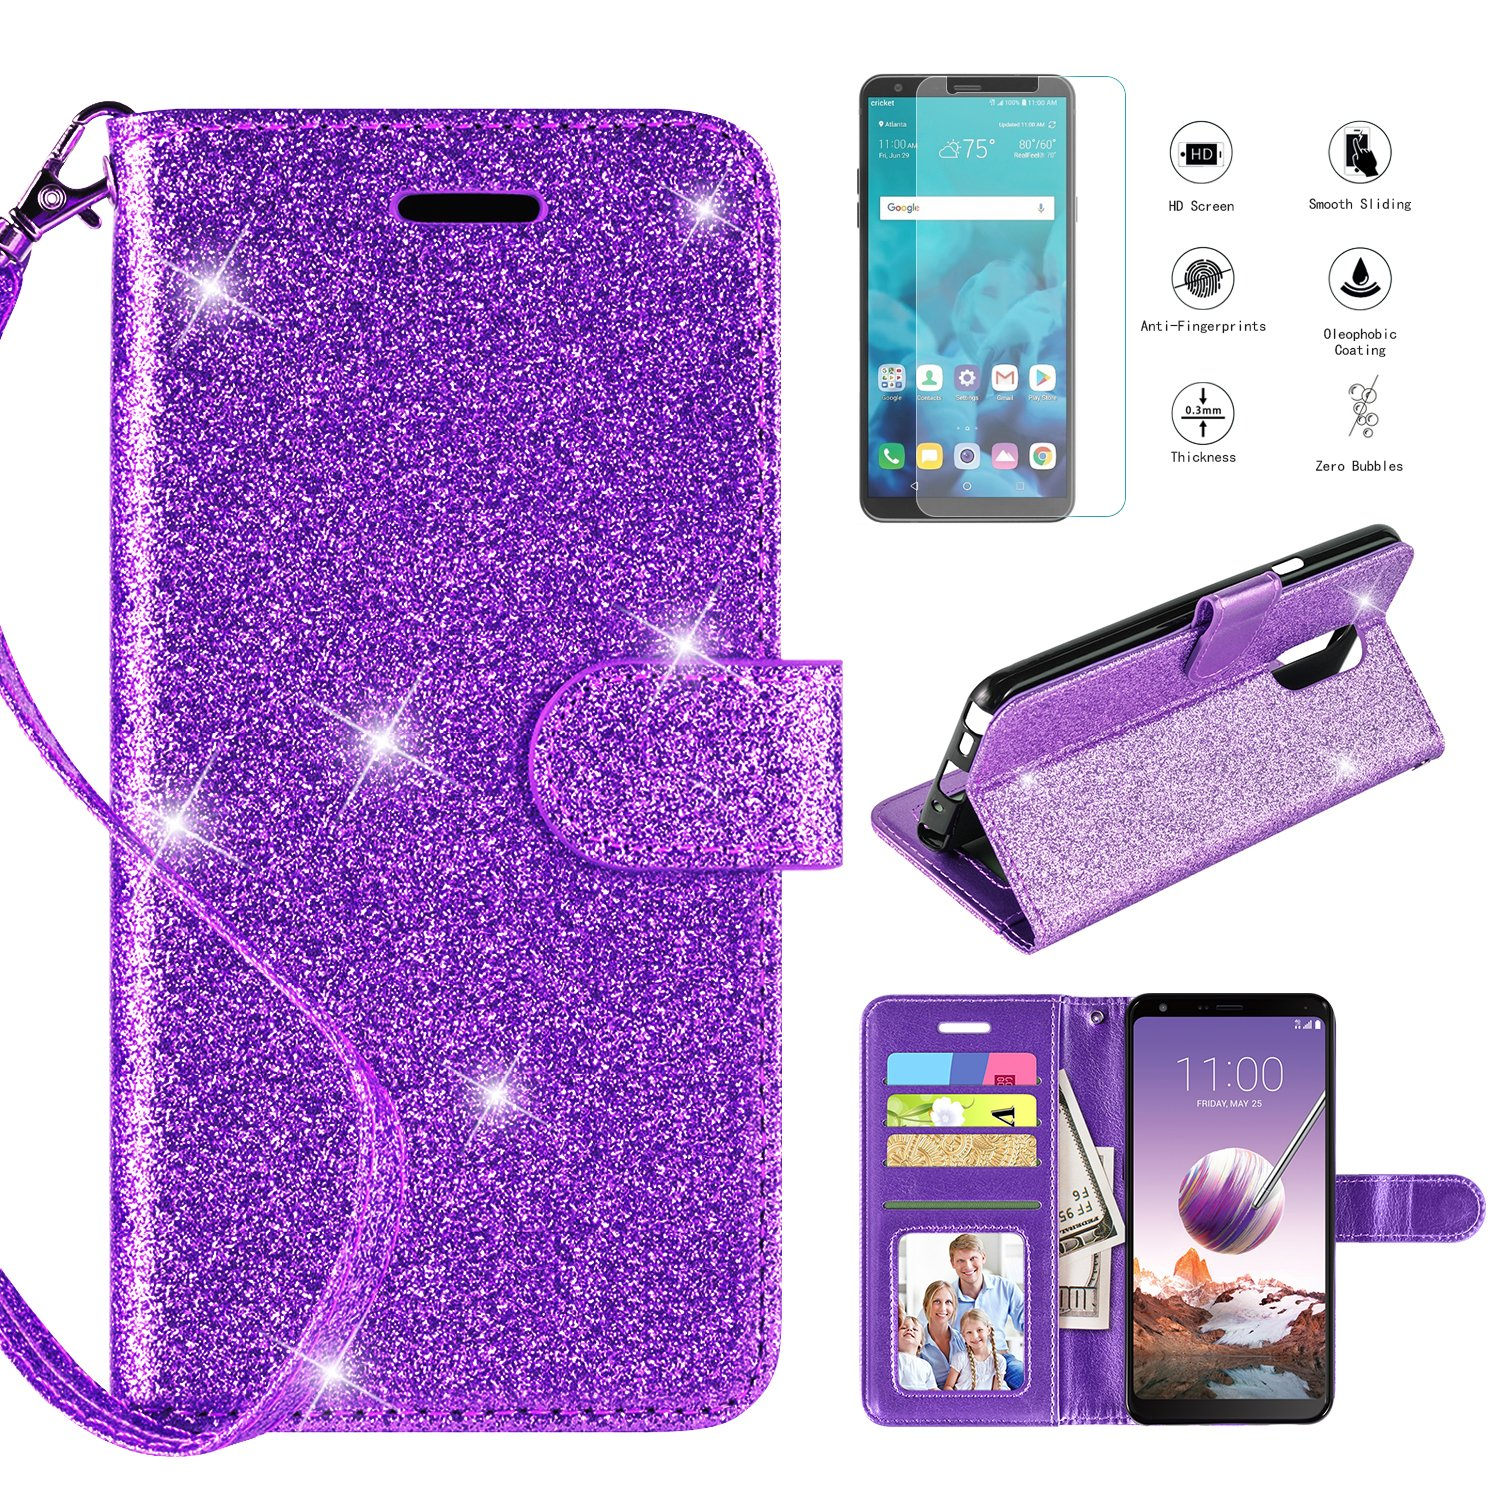 LG Stylo 4 Case 2018,LG Stylo 4 Phone Case Wallet Case w Screen Protector, Kickstand Card Slots Wrist Strap 2 in 1 Glitter Magnetic Flip PU Leather Wallet Cover Compatible LG Stylo 4 Plus,Purple